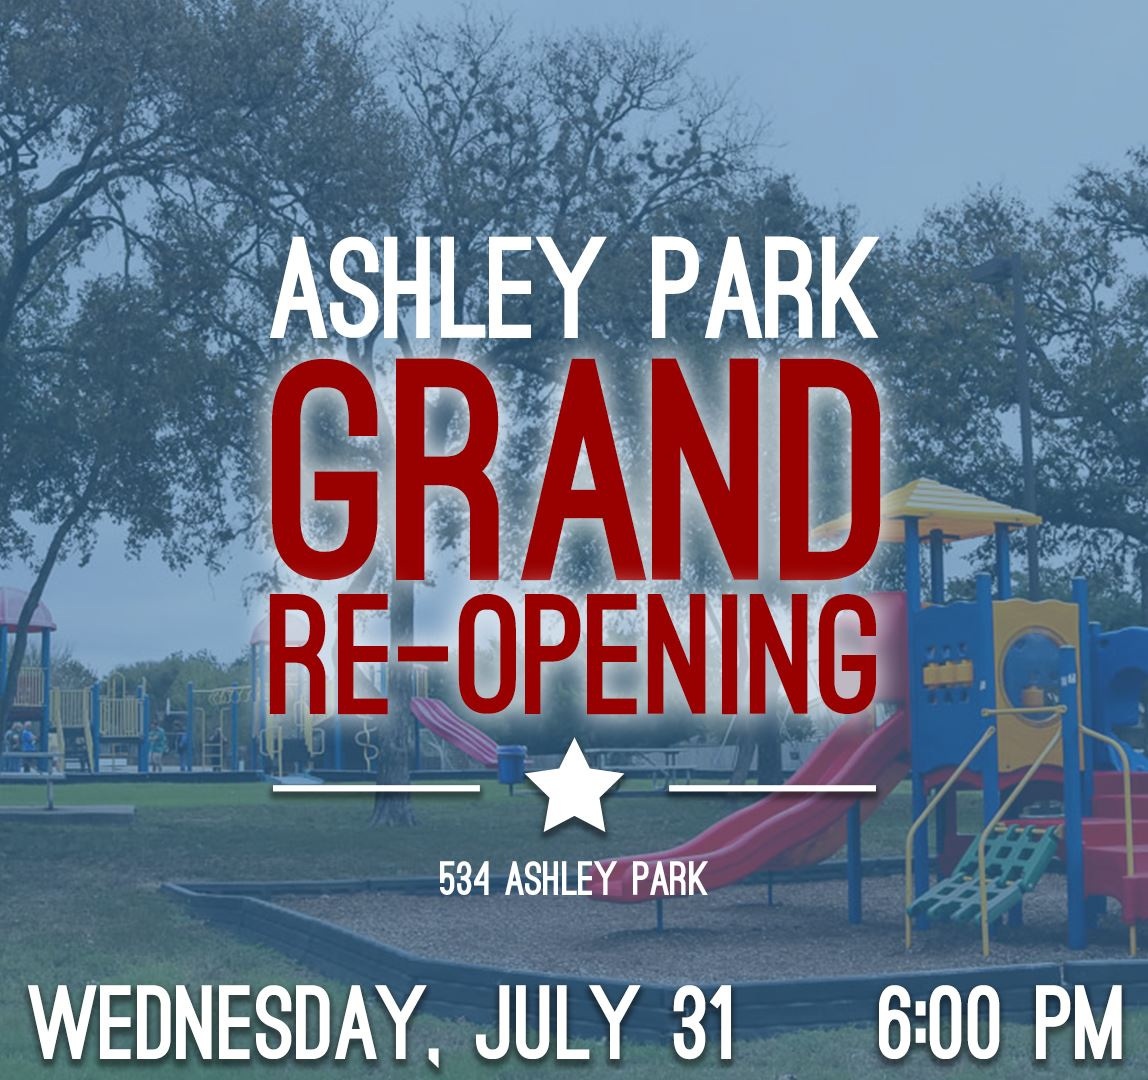 Ashley Park Grand Re-Opening